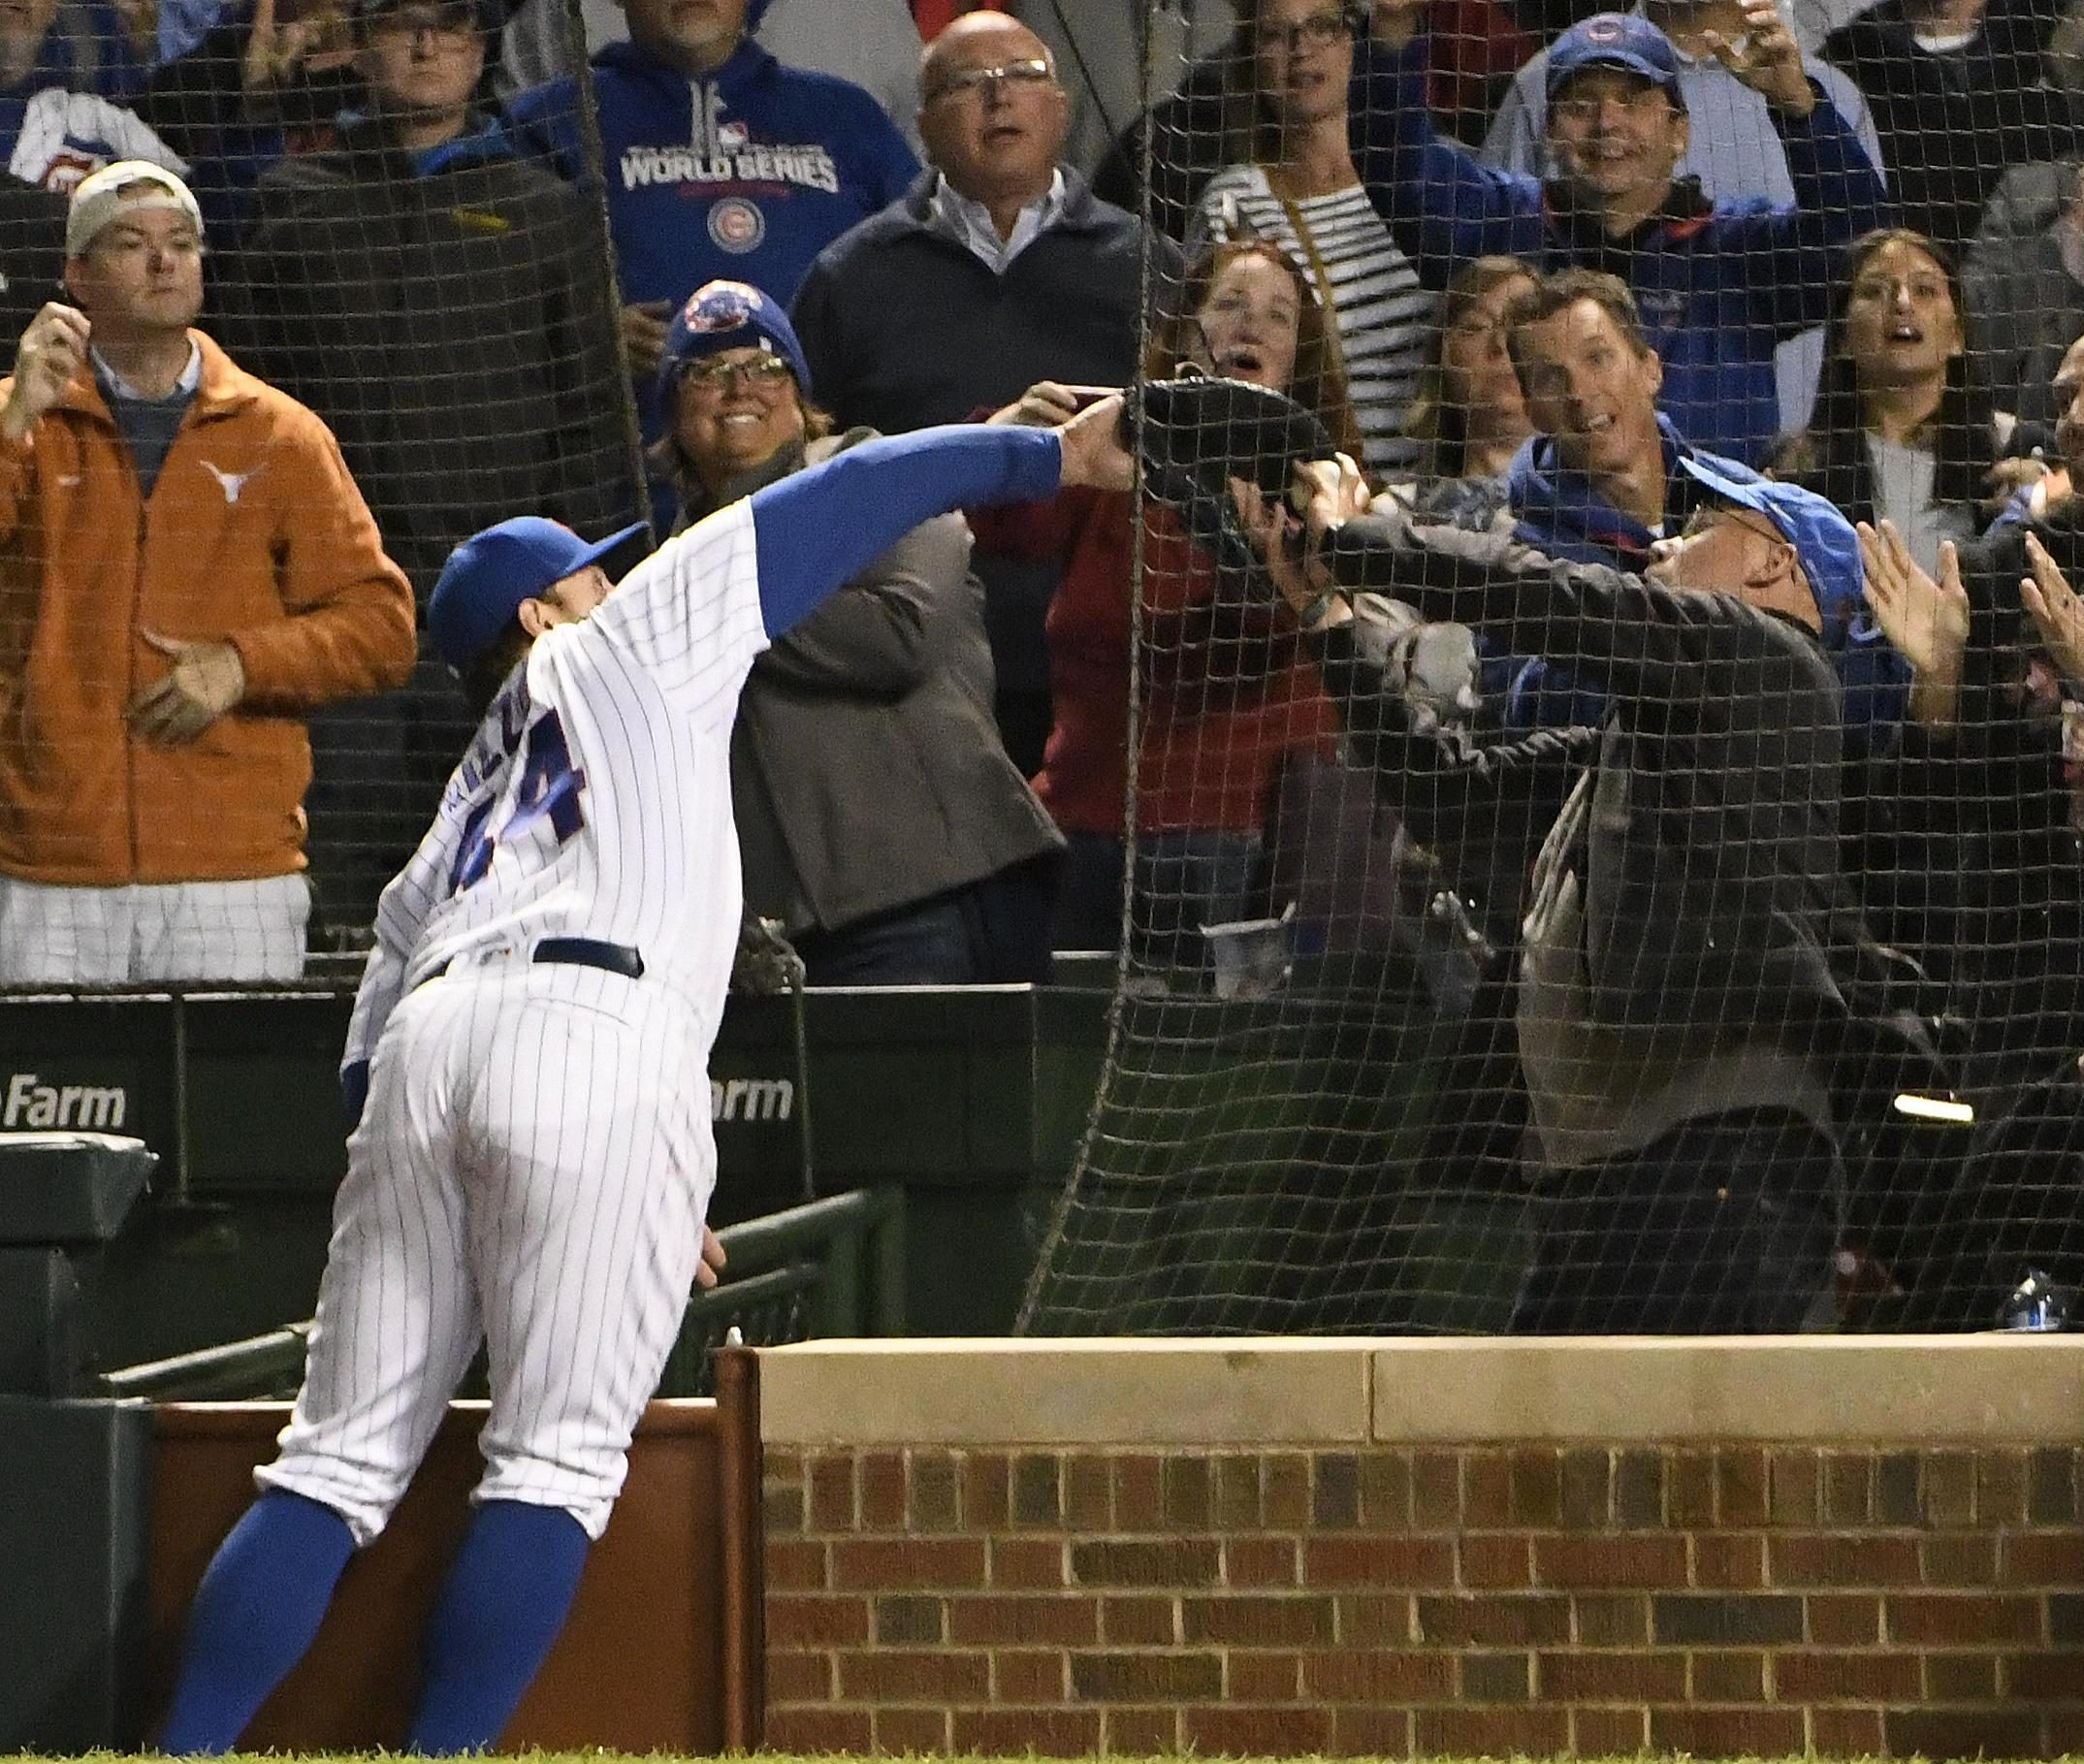 Anthony Rizzo beat a fan to catch the ball in the Cubs game last night